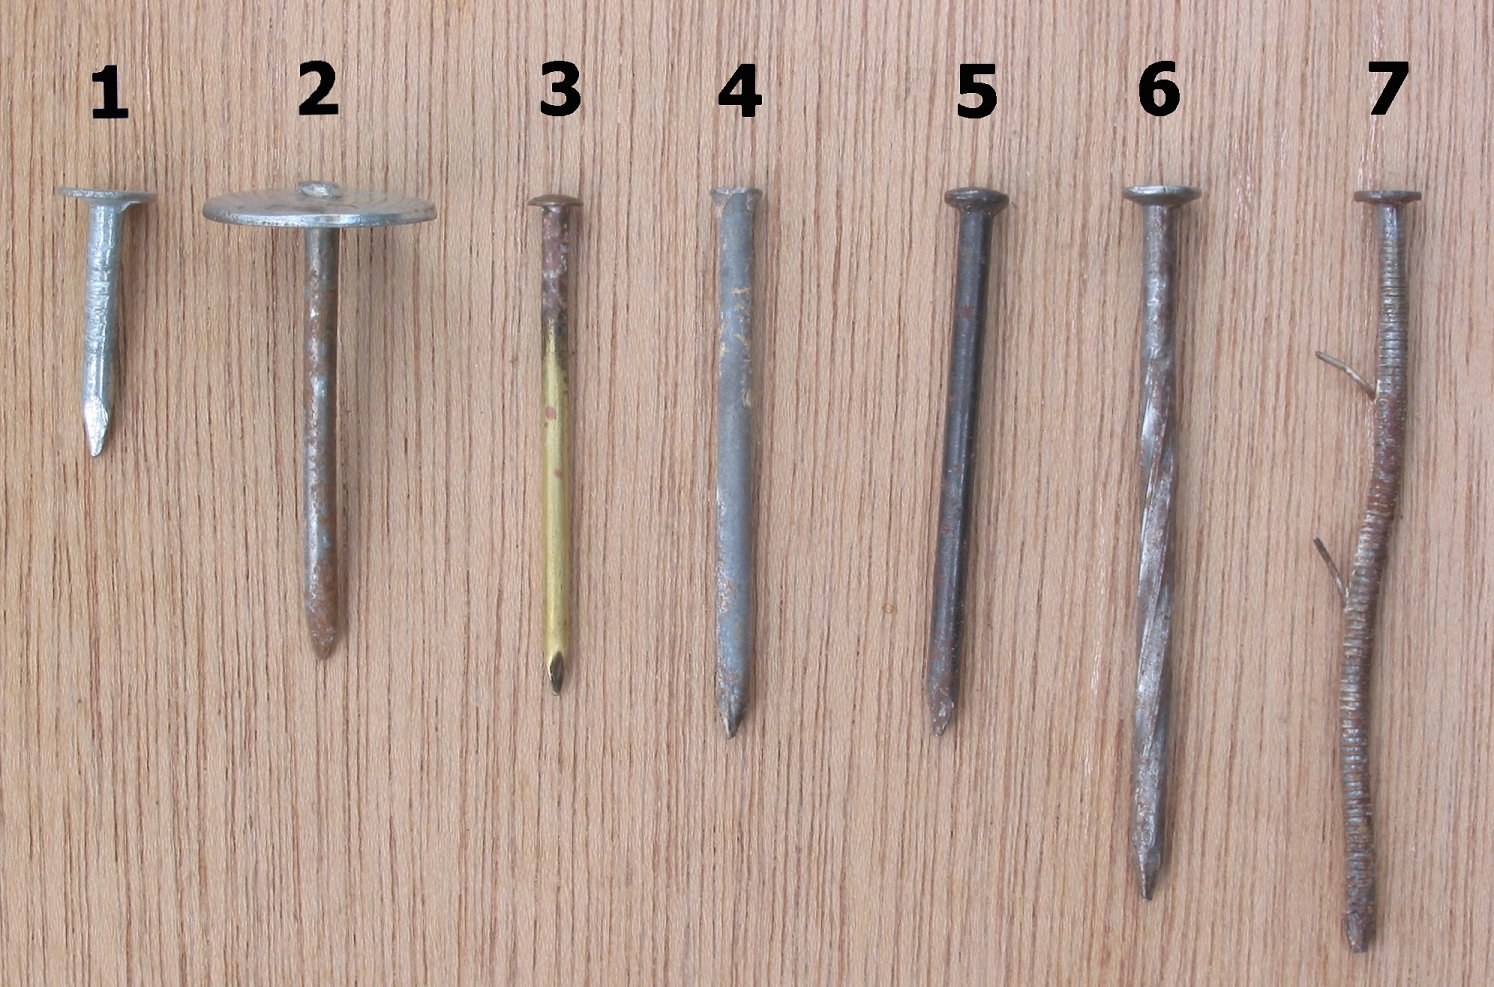 Different types of nails: 1) Roofing nail, 2) Umbrella head roofing nail, 3) Brass escutcheon pin, 4) Finish nail, 5) Concrete nail, 6) Spiral-shank nail, and 7) Ring-shank nail (the barbs are a leftover component of the feed system of a nail gun)